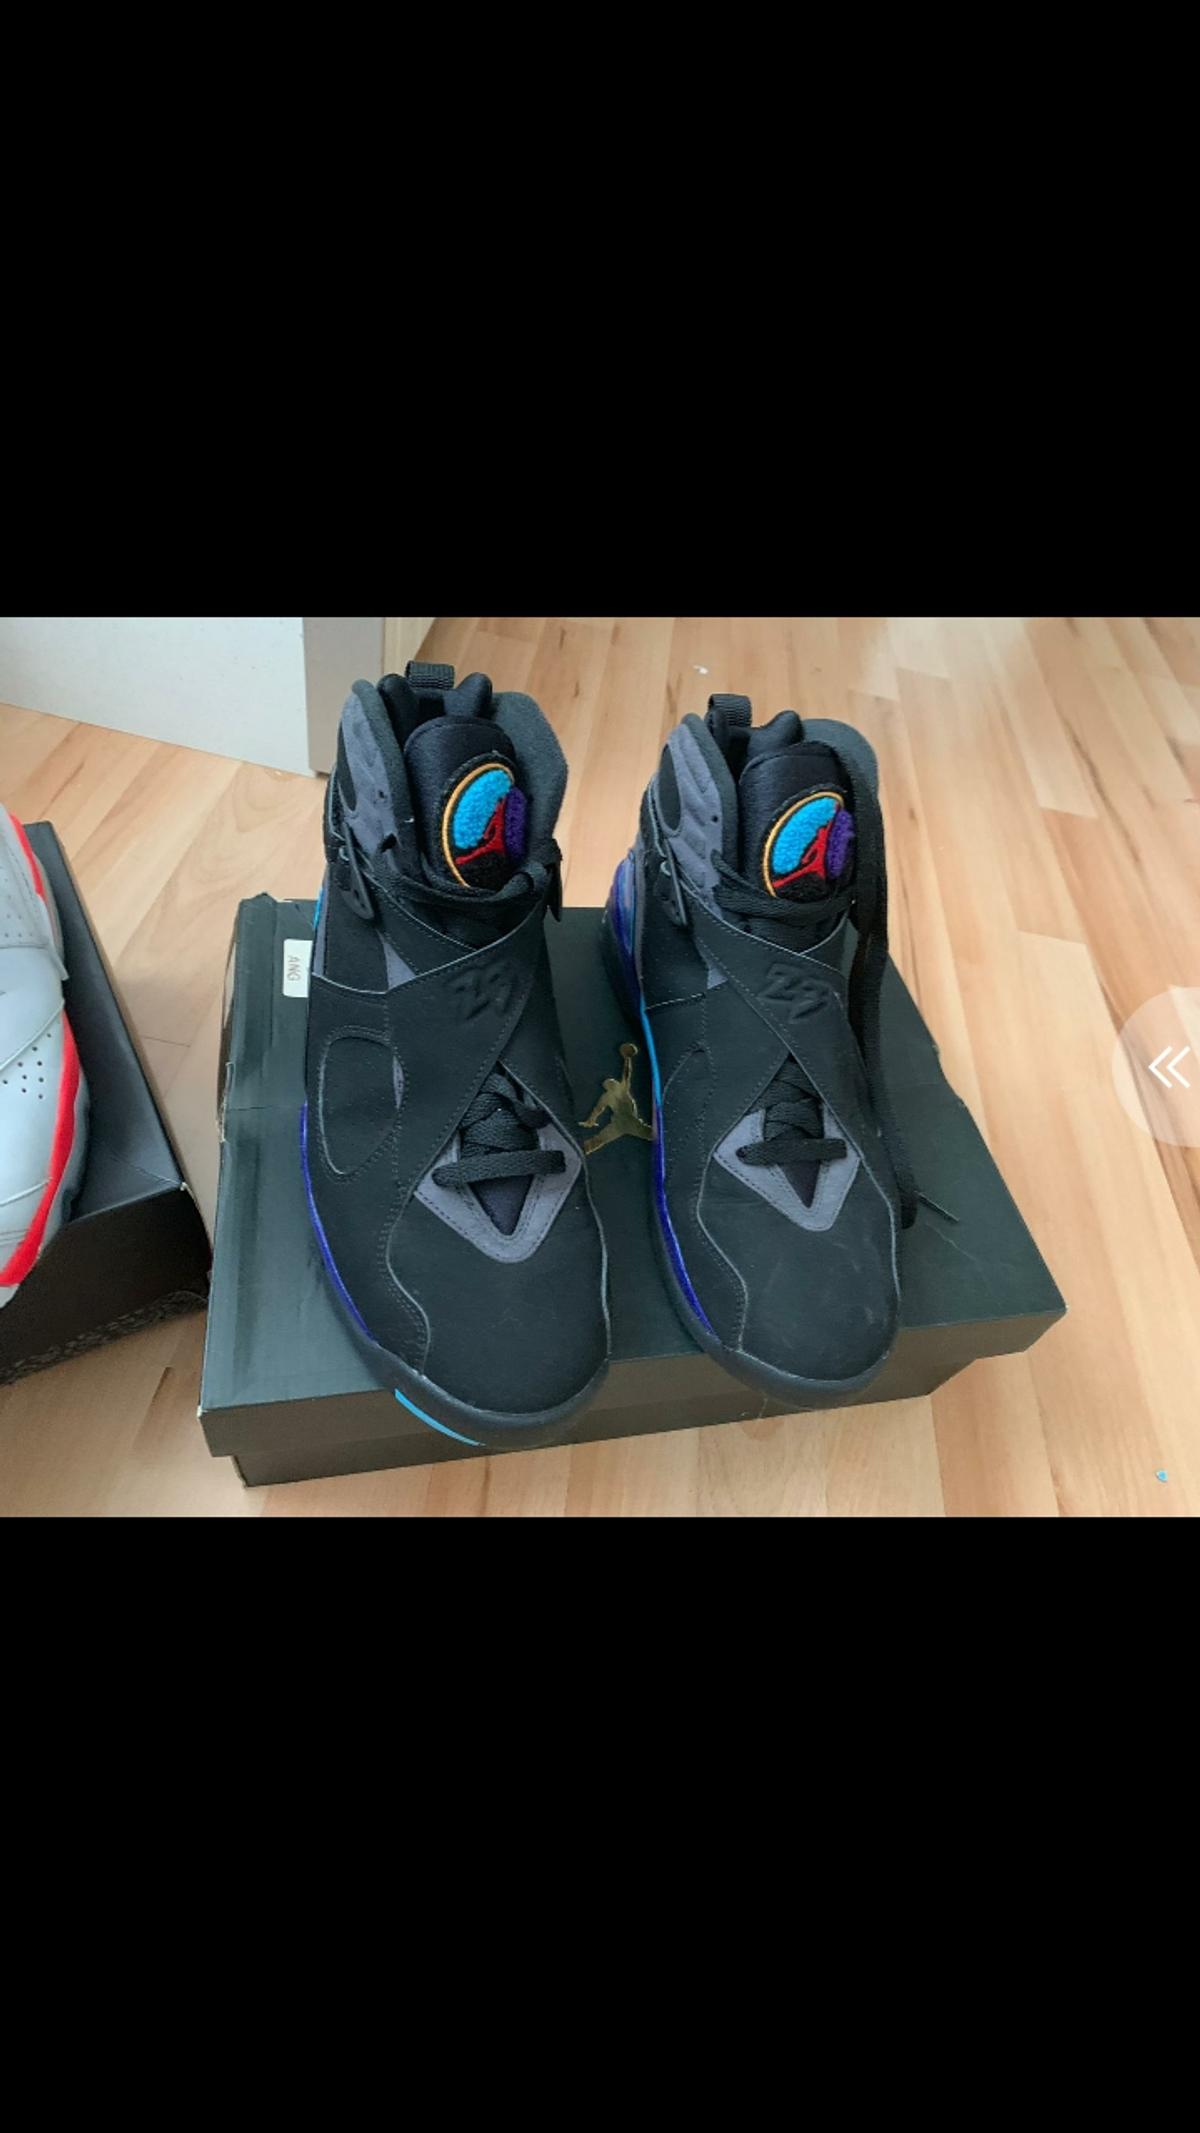 028153e1e13e NIKE AIR JORDAN RETRO 8 AQUA UK 8.5 in NG2 Nottingham for £100.00 ...